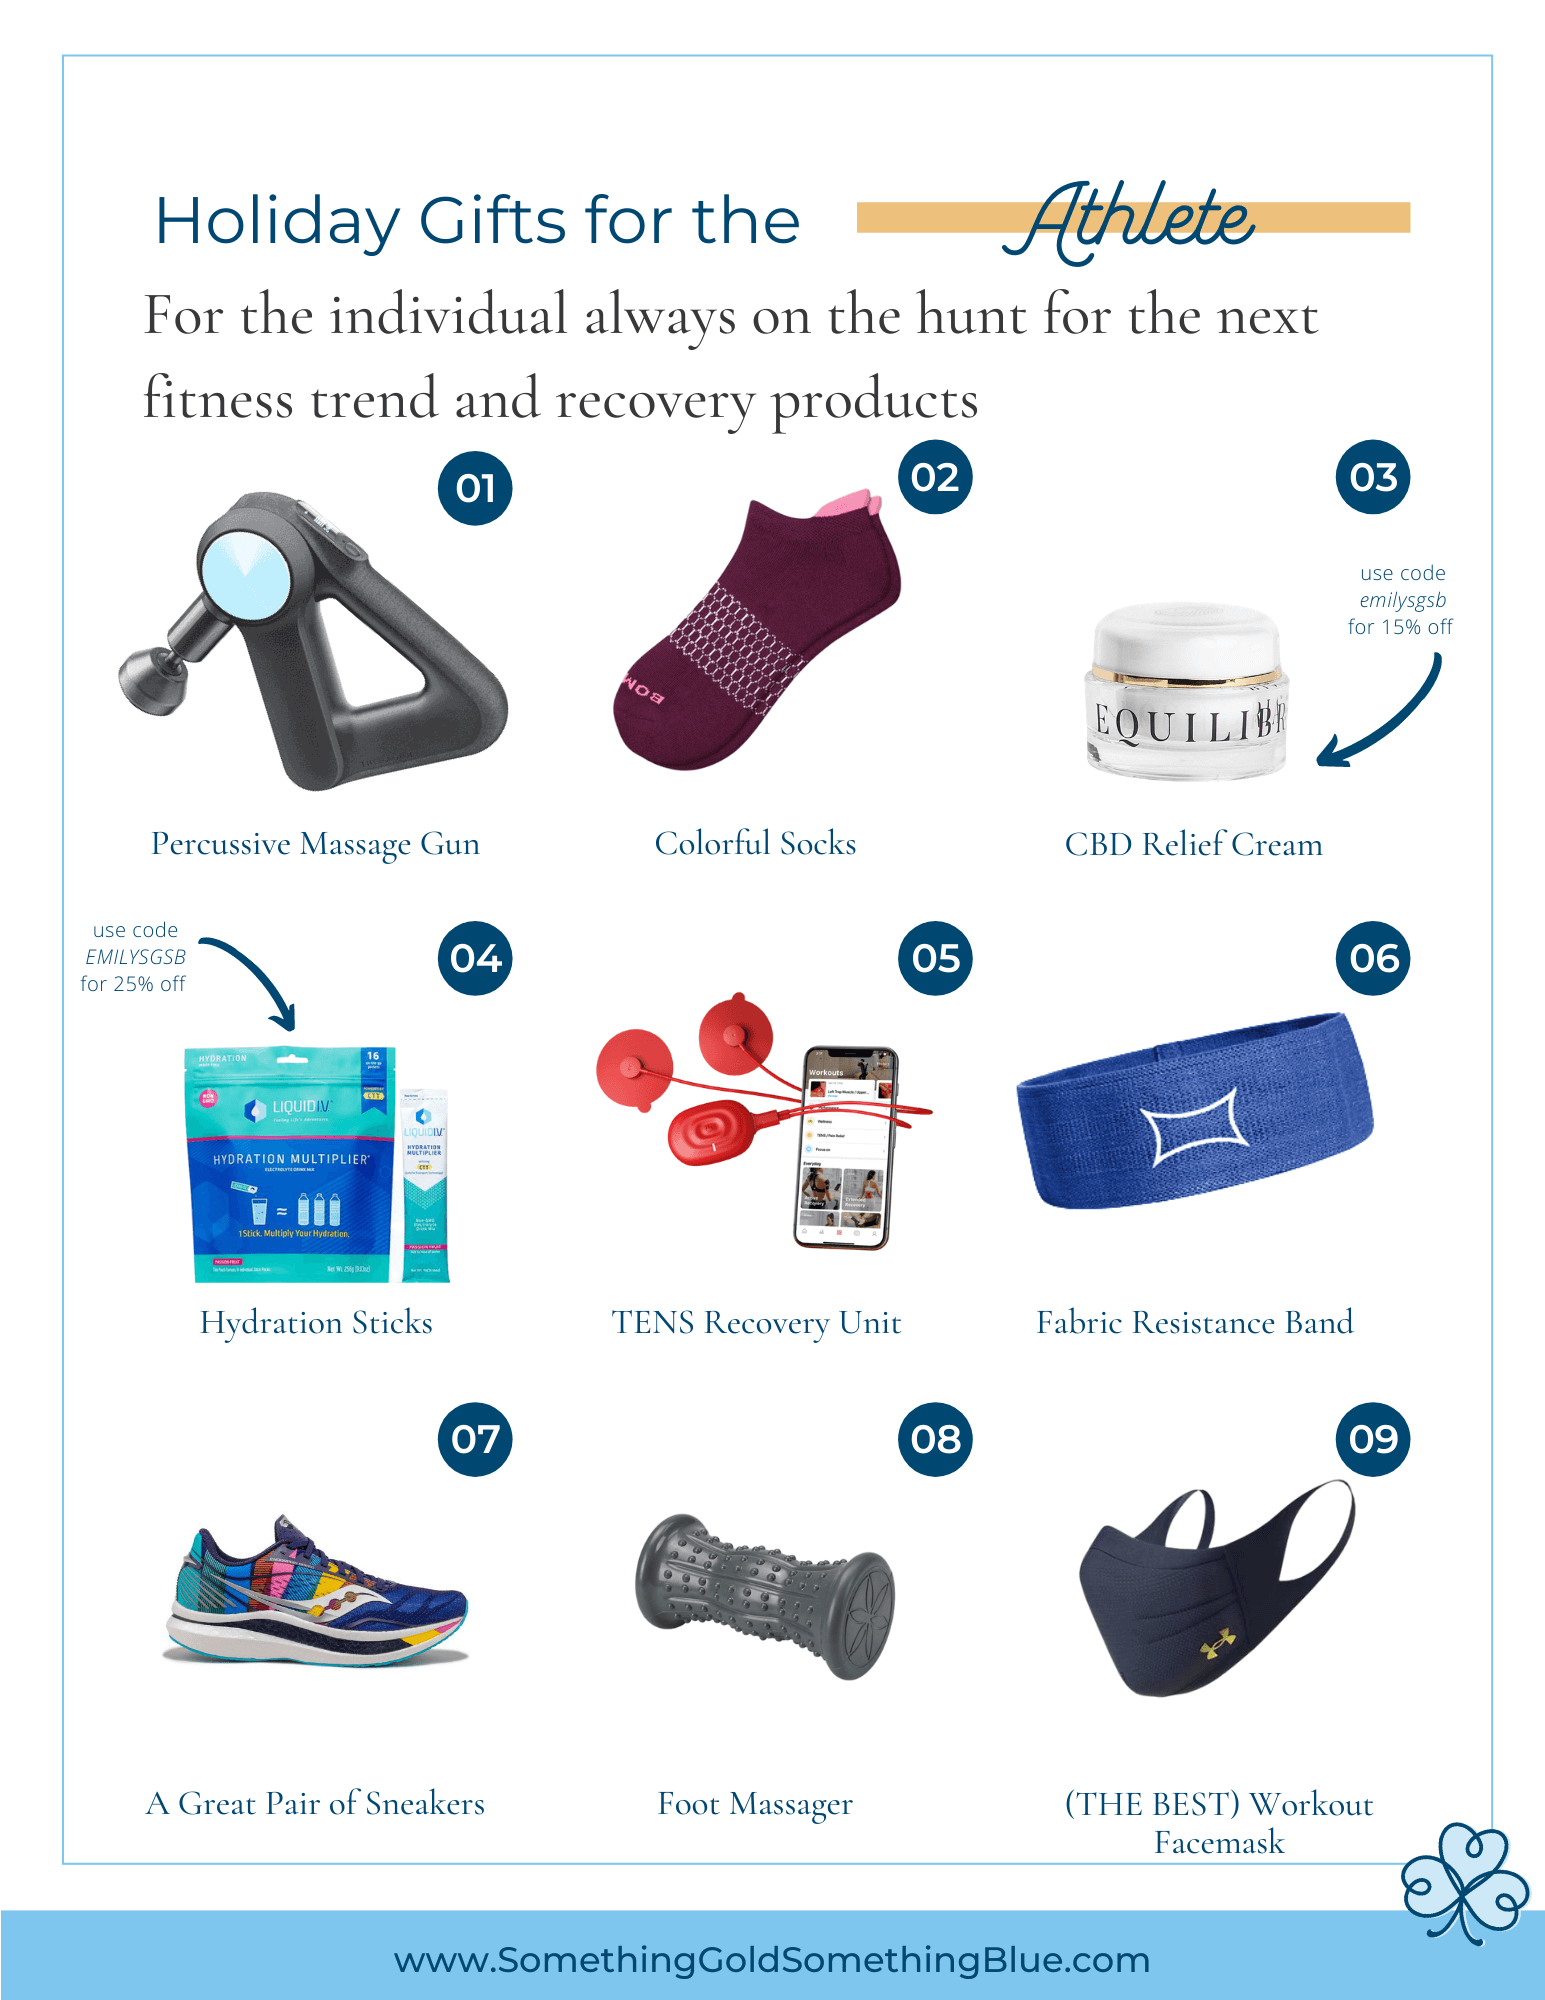 Gift Guide for the Athlete or Fitness Enthusiast in your life. These products will help them workout harder, get stronger, and recover faster.